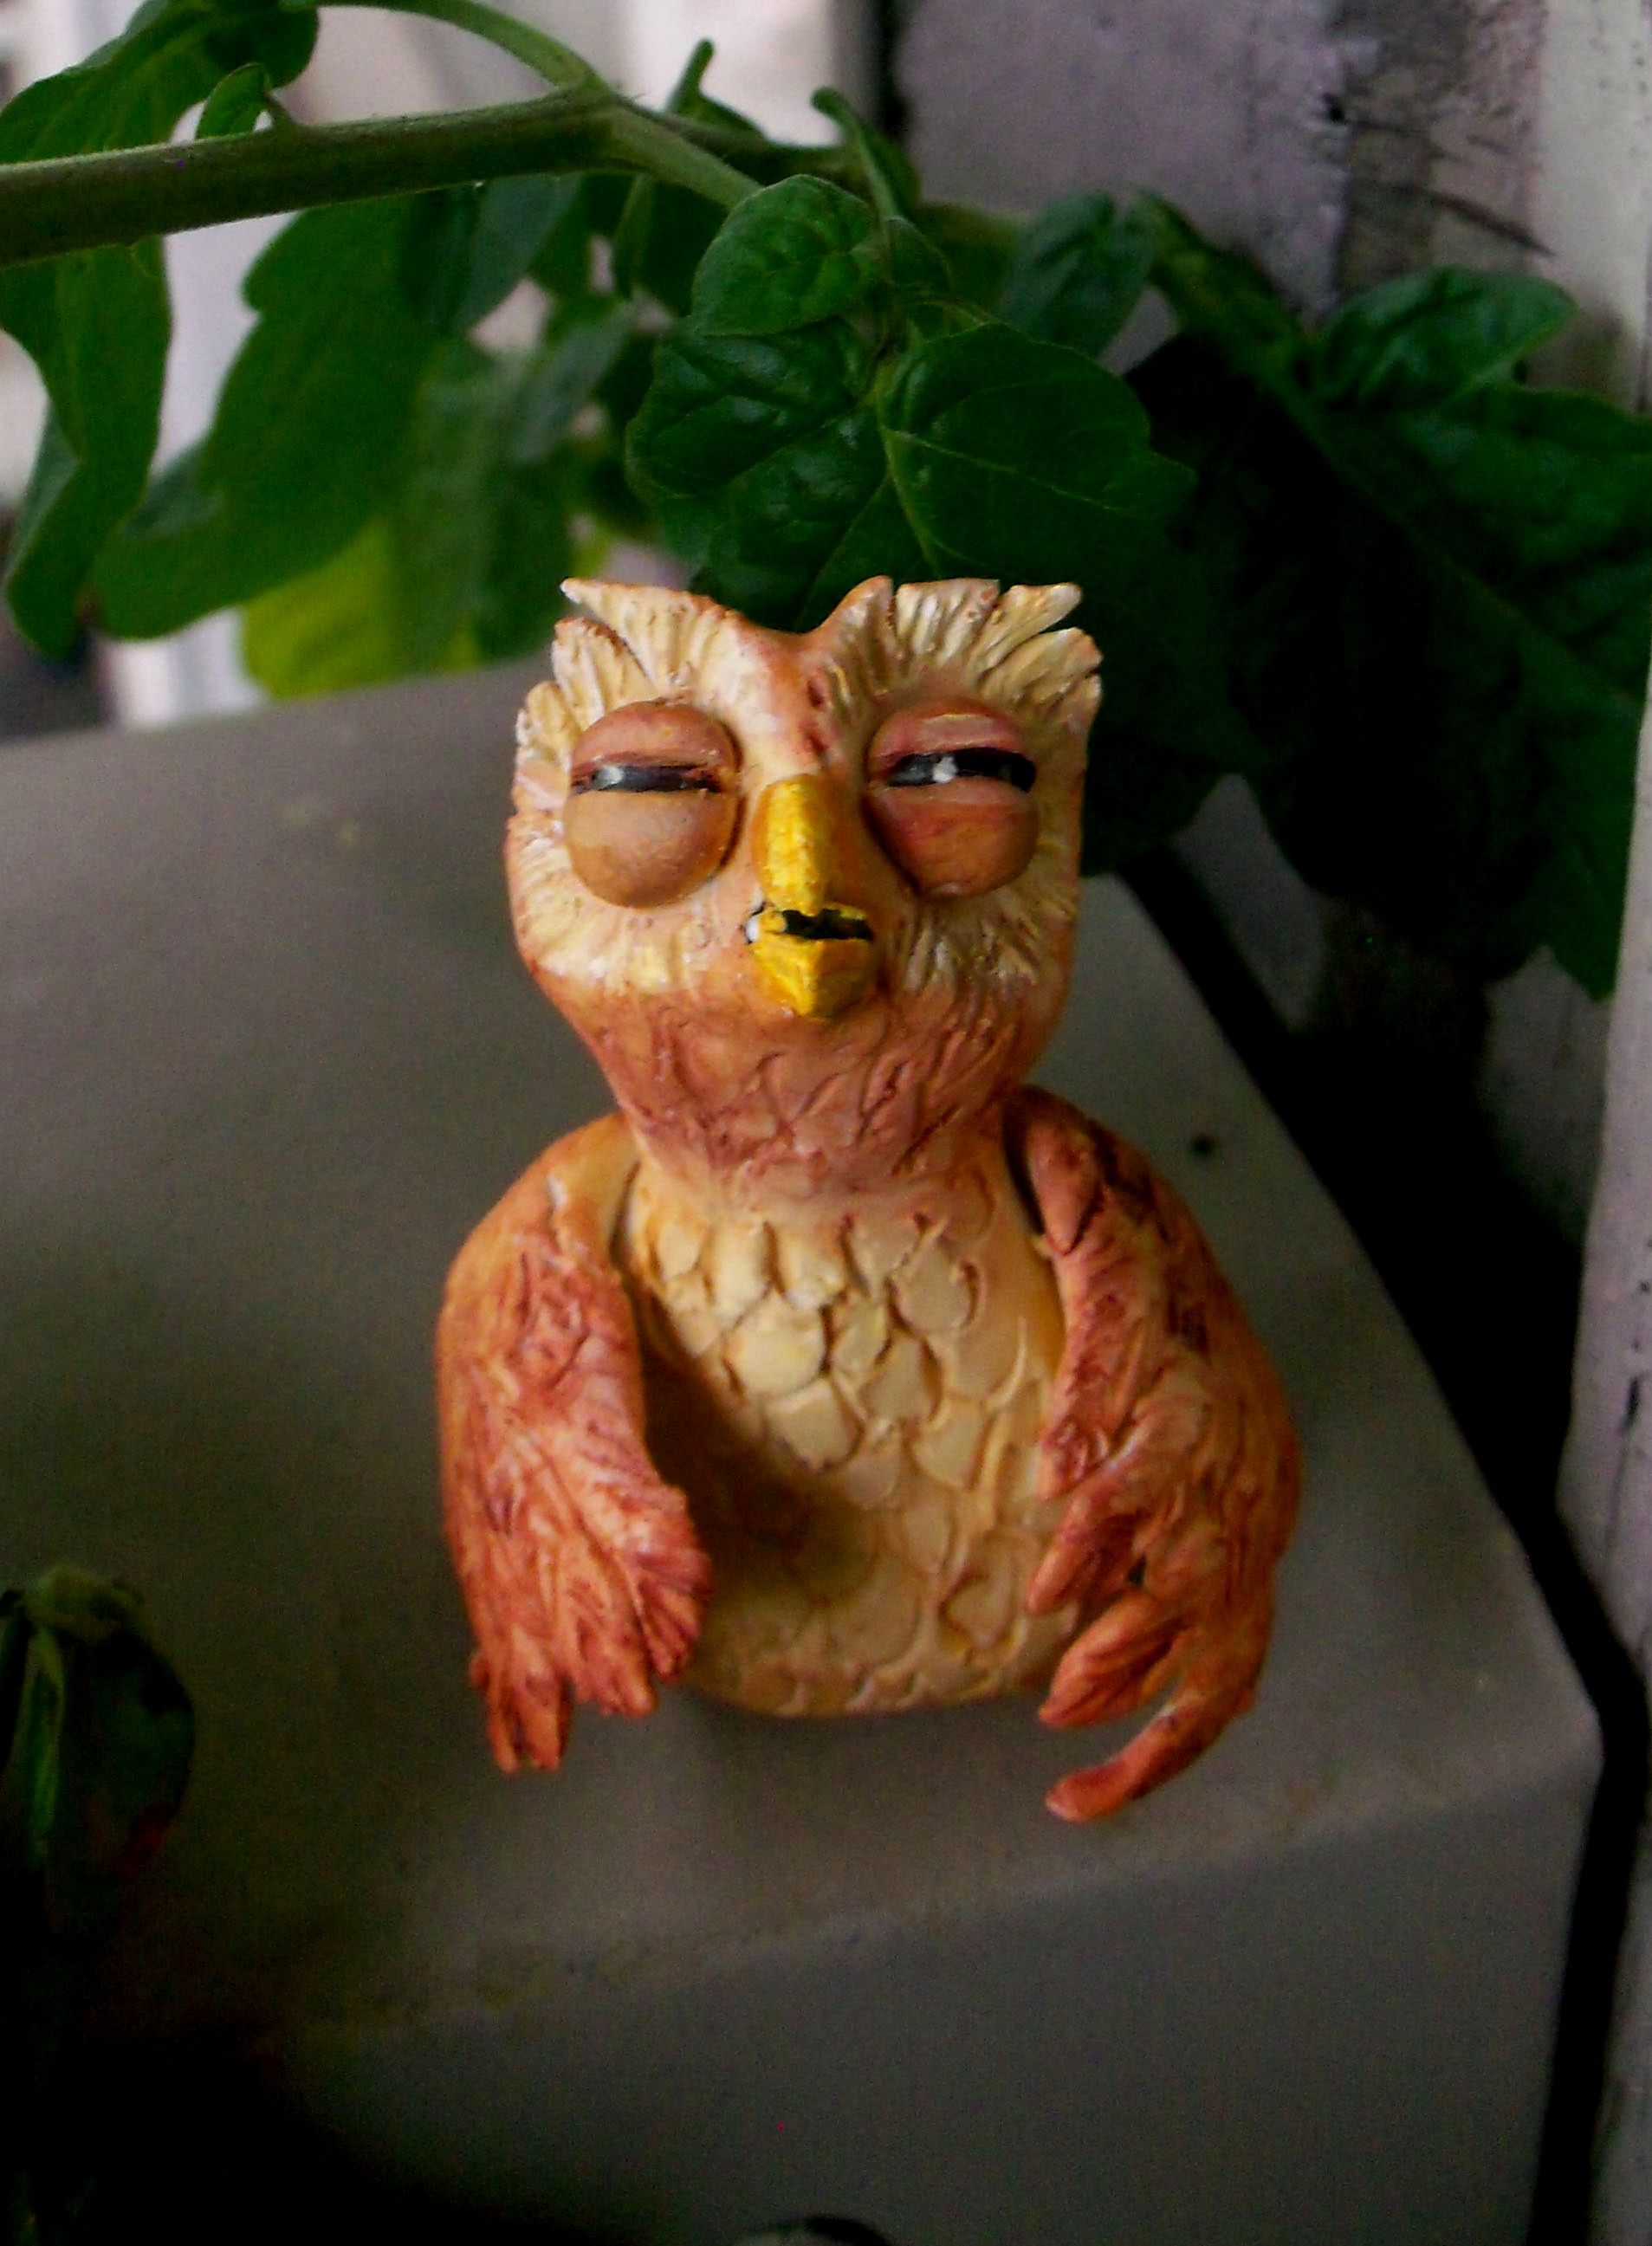 This is just a little owl friend. I think he looks stoned.